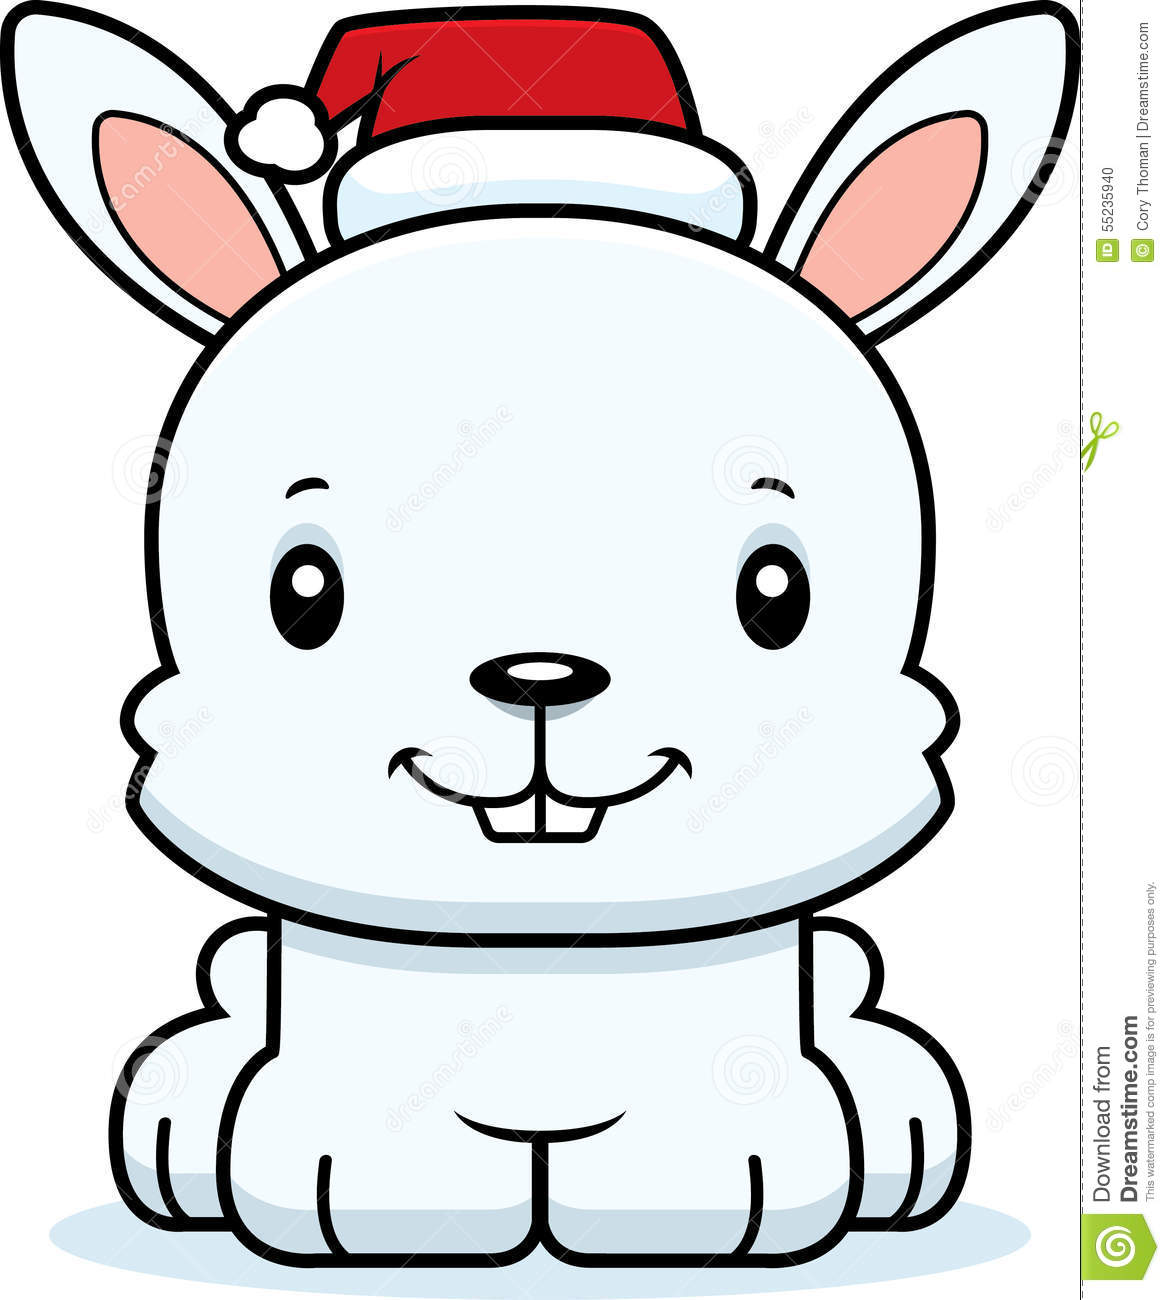 Cartoon Smiling Xmas Bunny Stock Vector - Image: 55235940